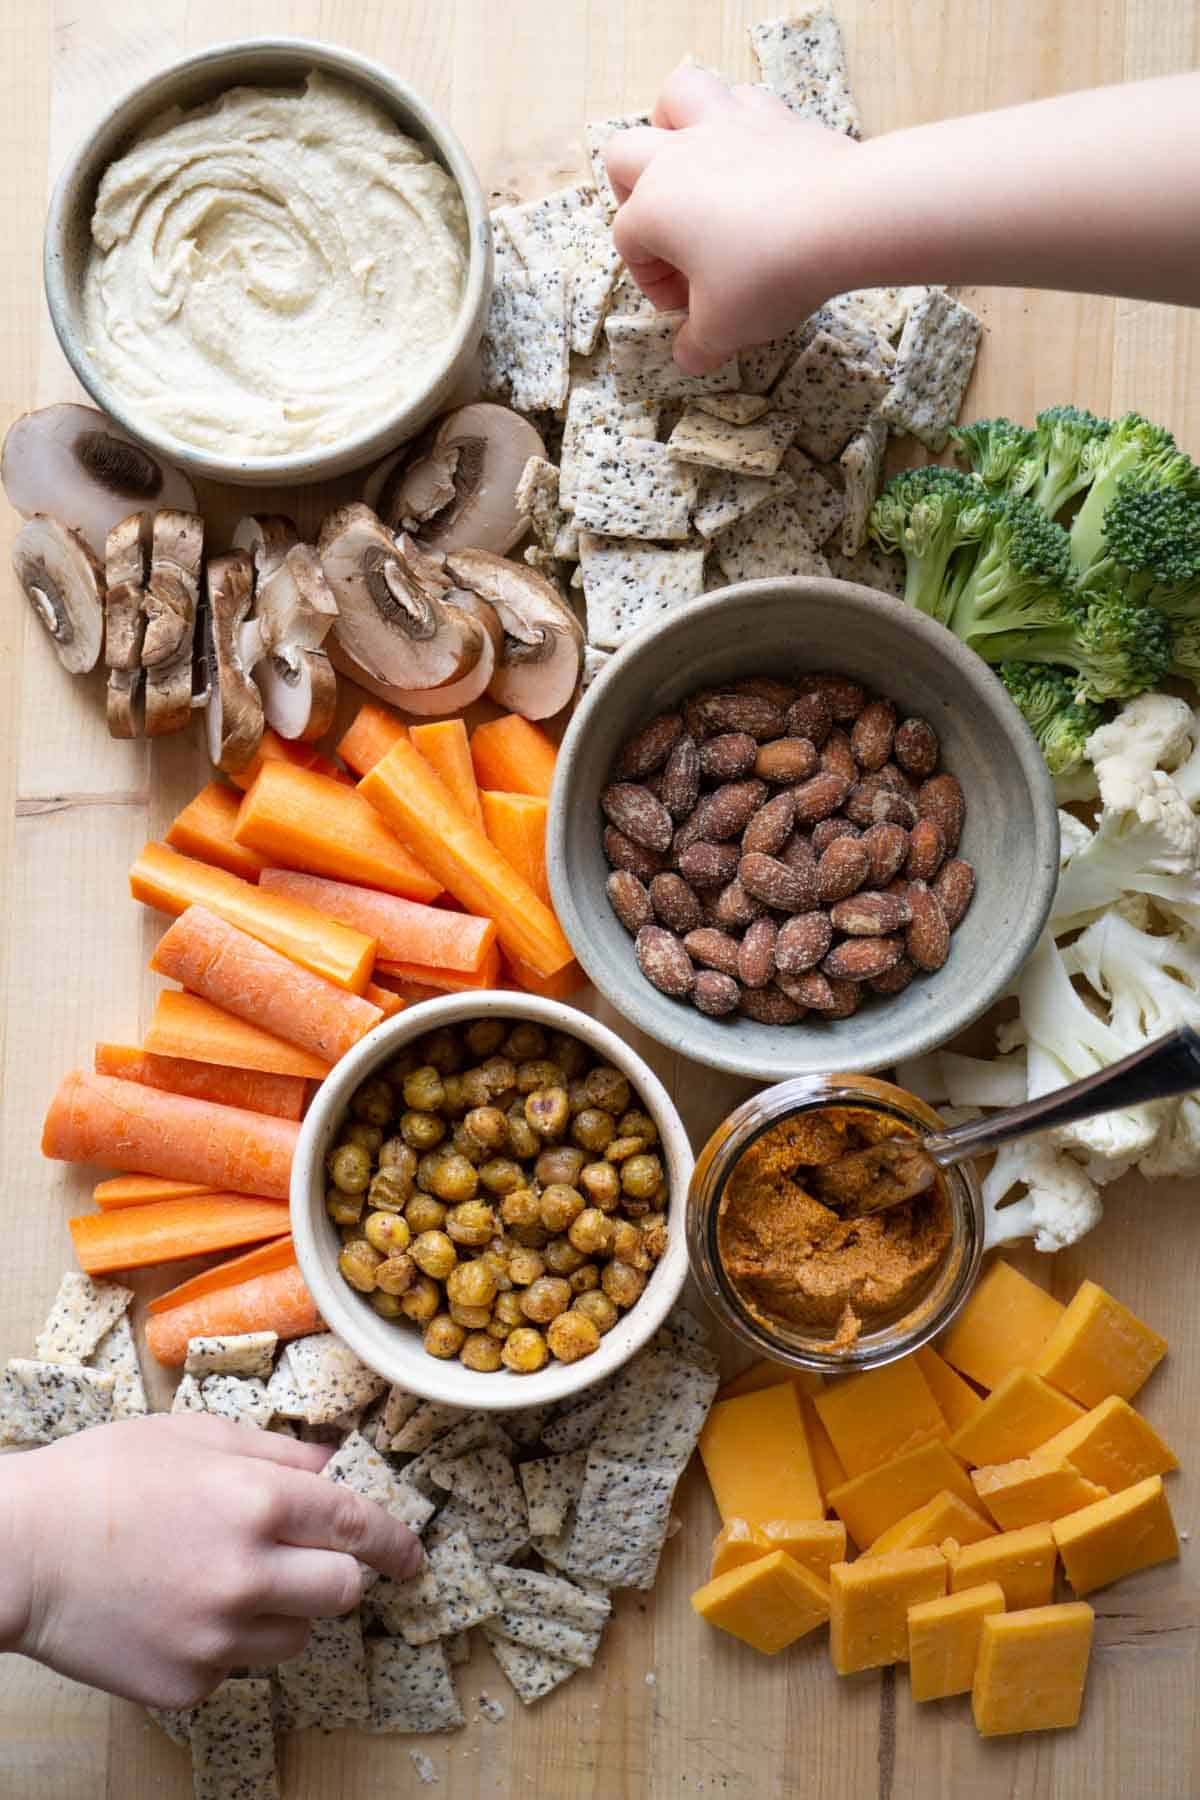 overview of snack board with hummus, sourdough crackers, veggies, nuts, and cheese